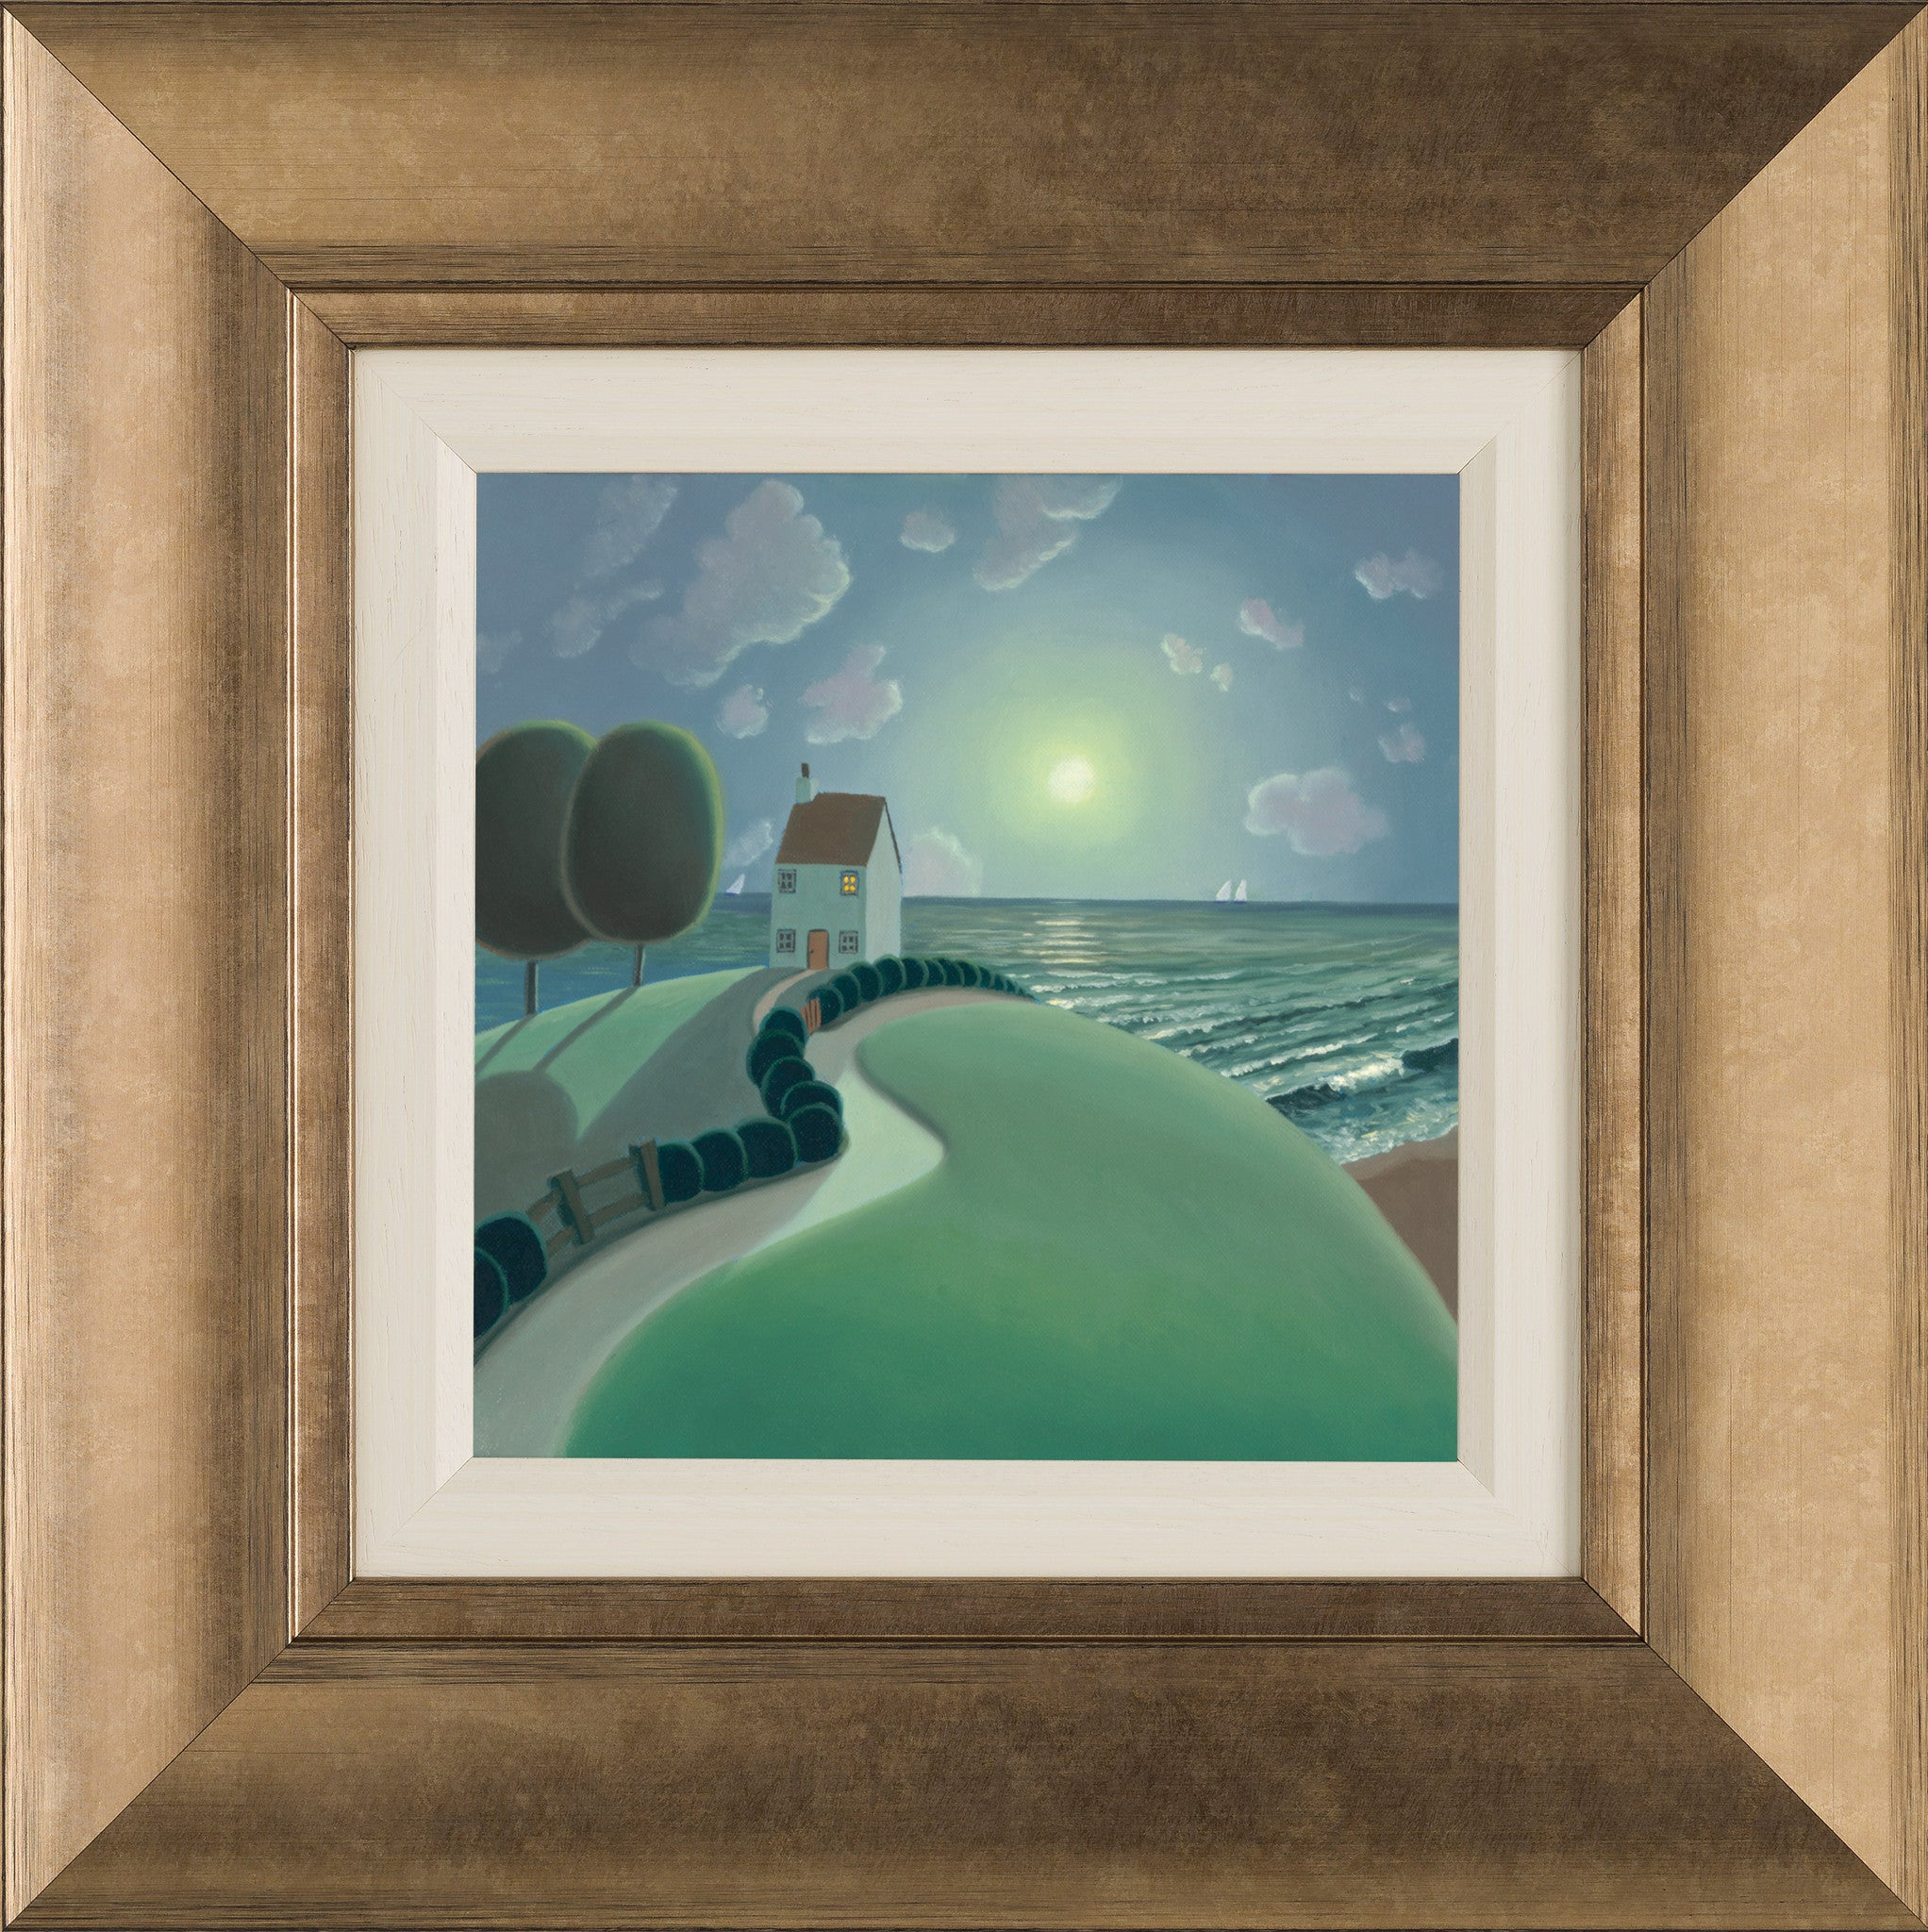 House By The Sea - 2014 - Paul Corfield - Sold Out - Antidote Art